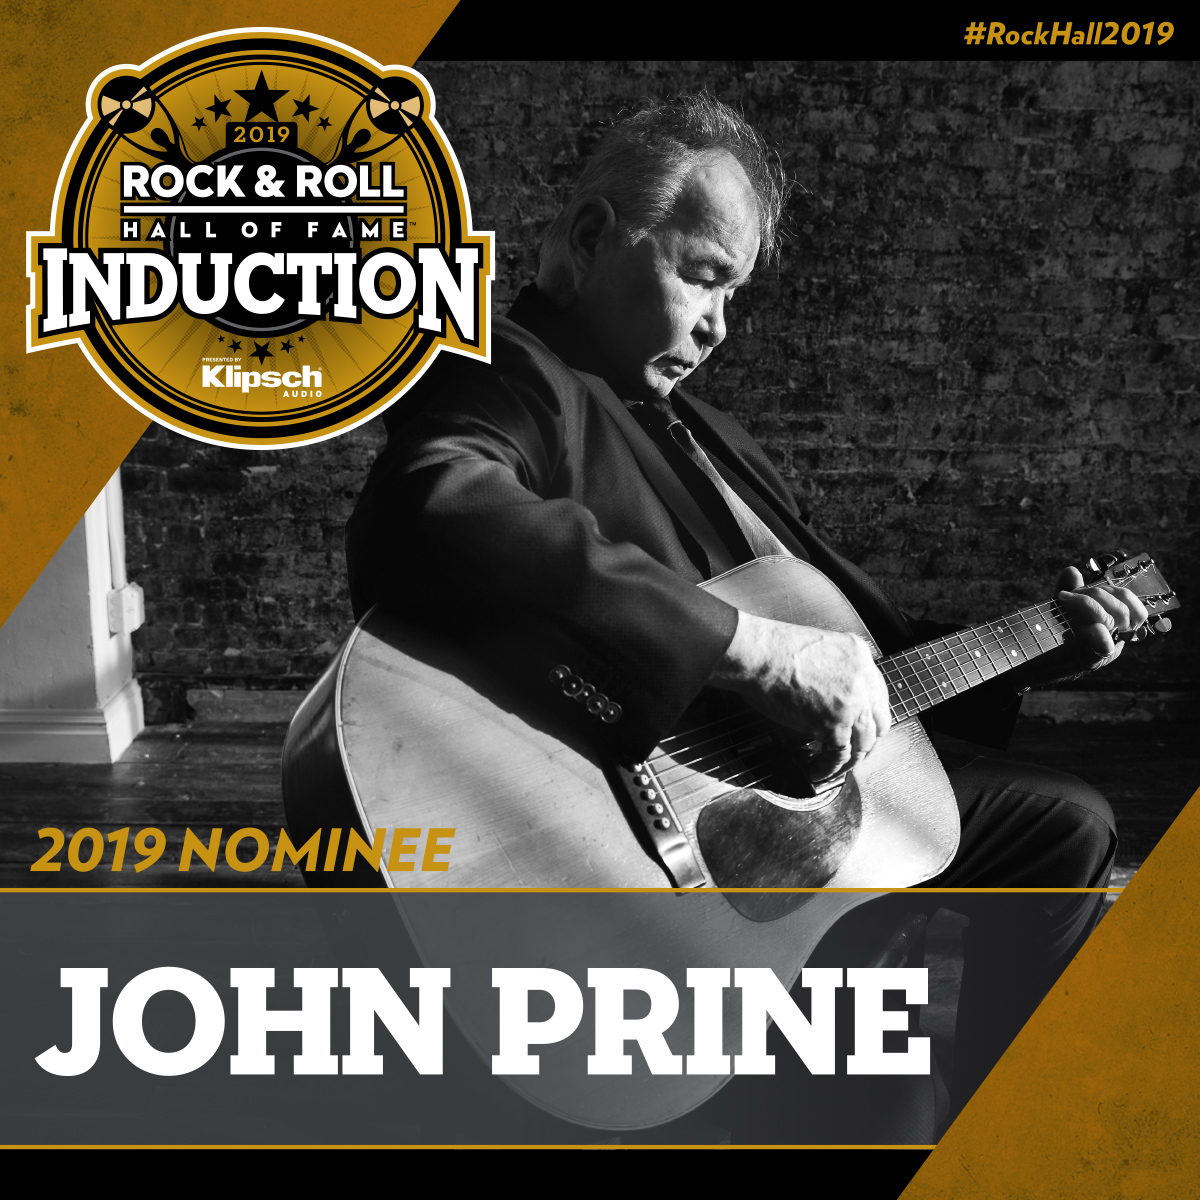 John Prine Nominated for 2019 Rock & Roll Hall of Fame